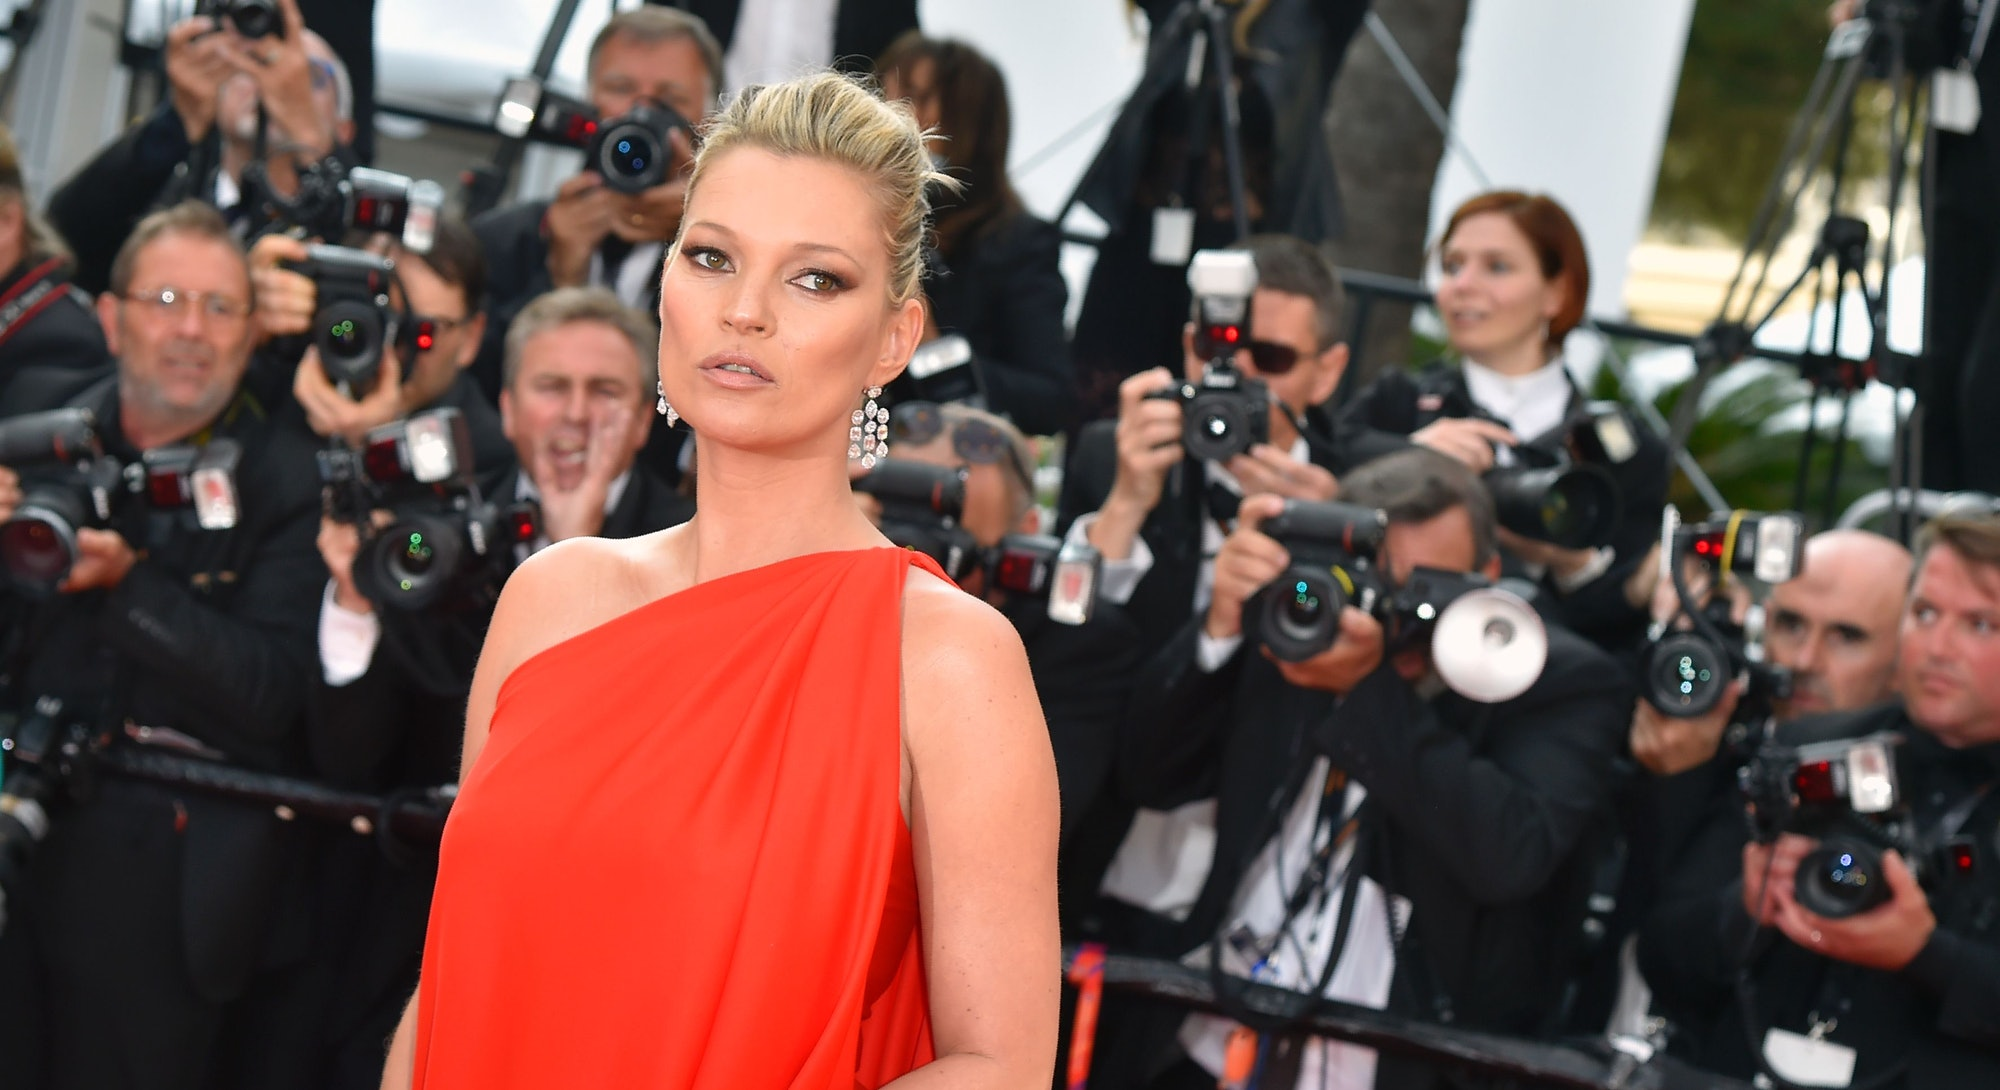 Kate Moss at the 2016 Cannes Film Festival